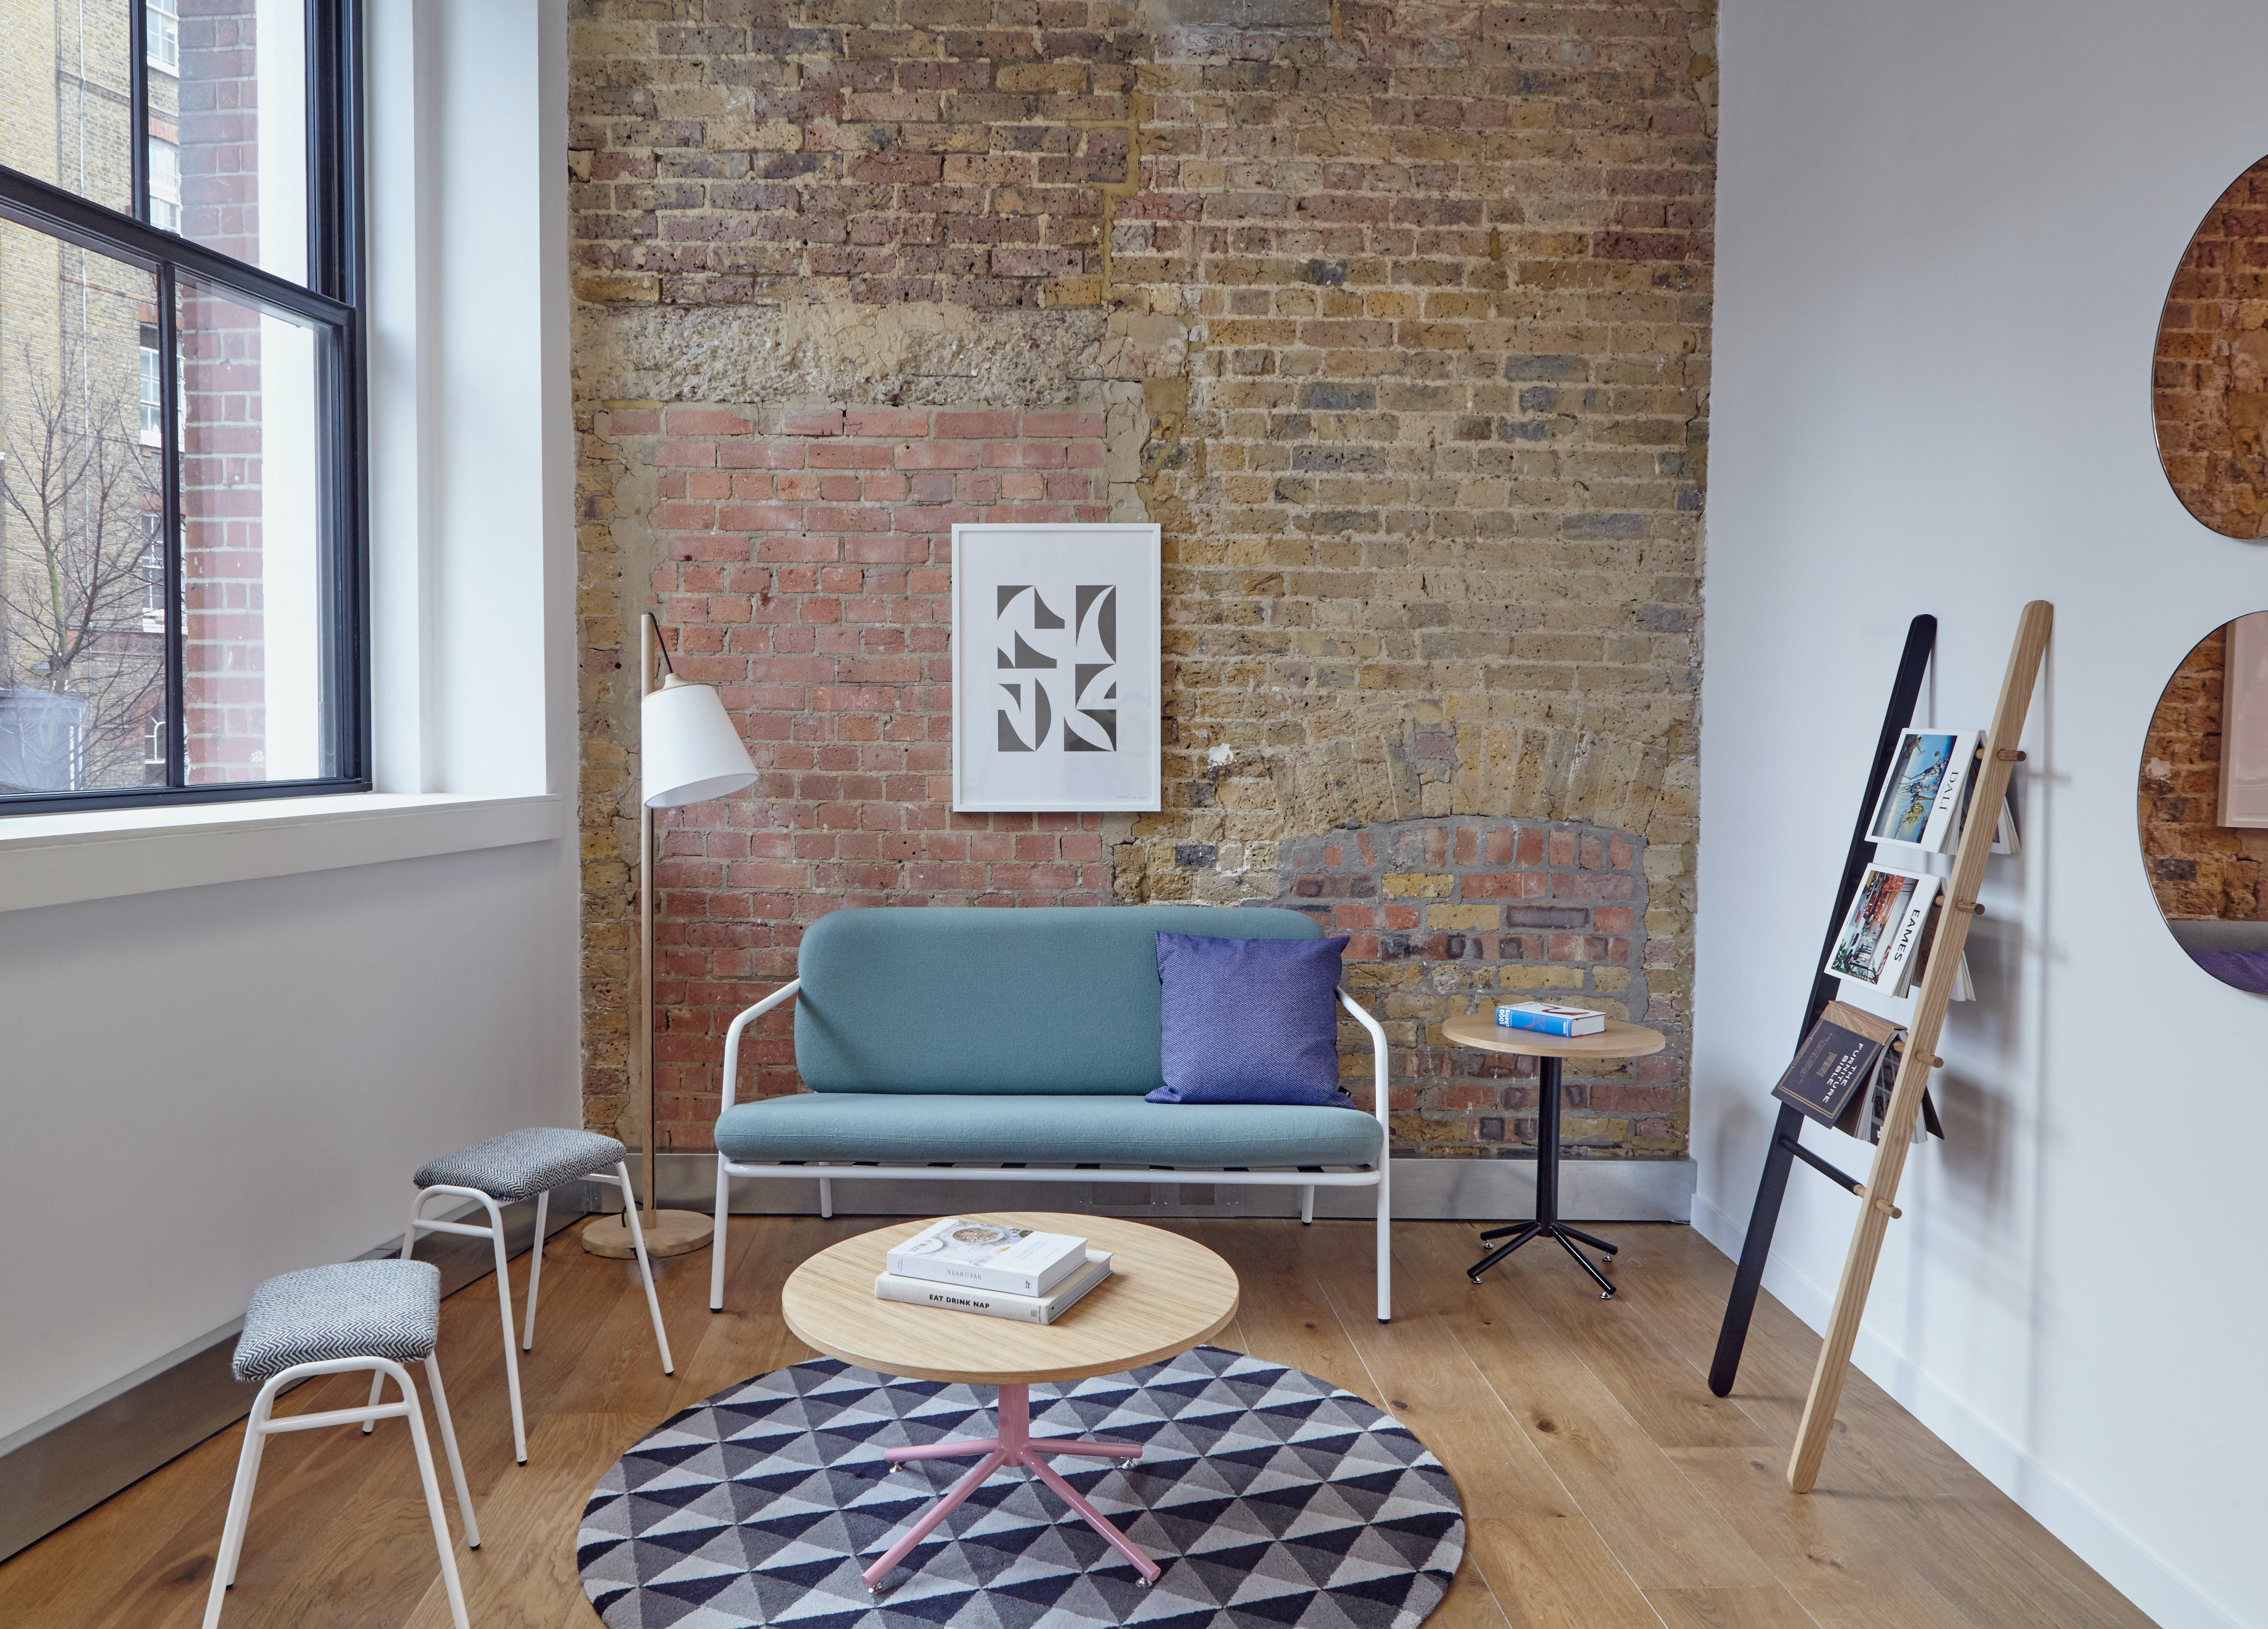 interview space at 80 Clerkenwell Road, Clerkenwell